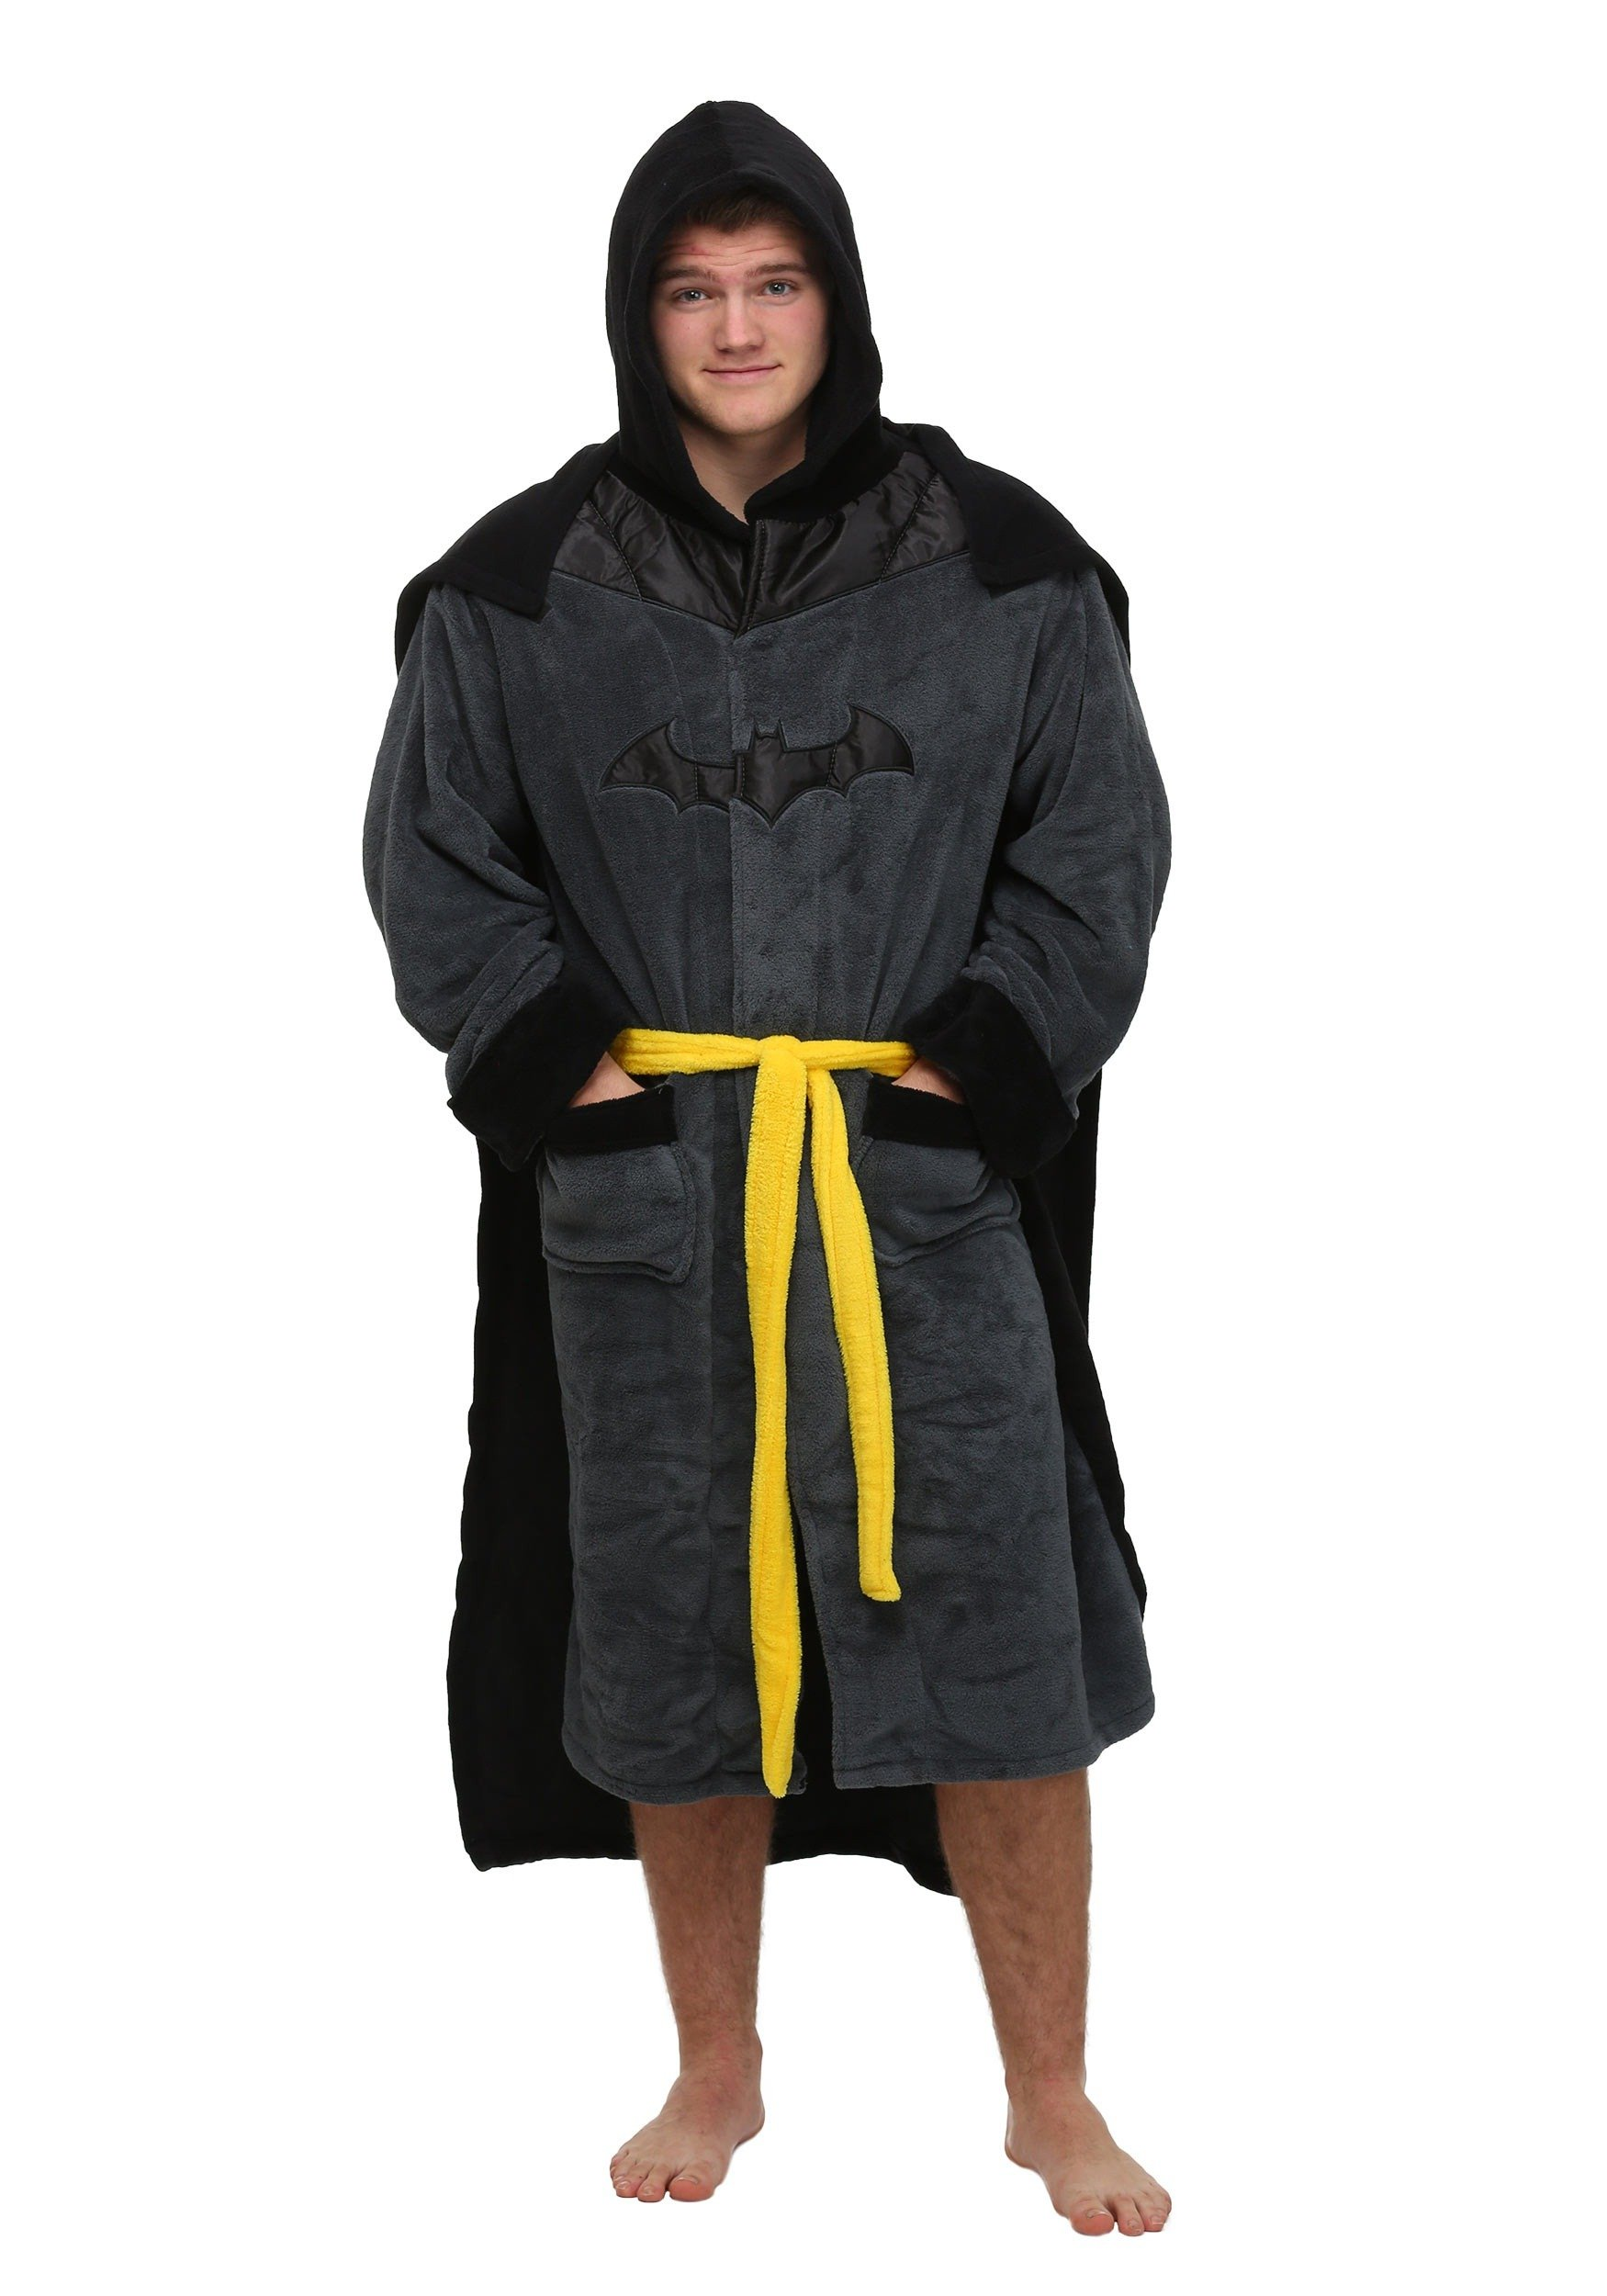 DC Comics Batman Mens Fleece Bathrobe & Swim Suit Cover Up with Cape